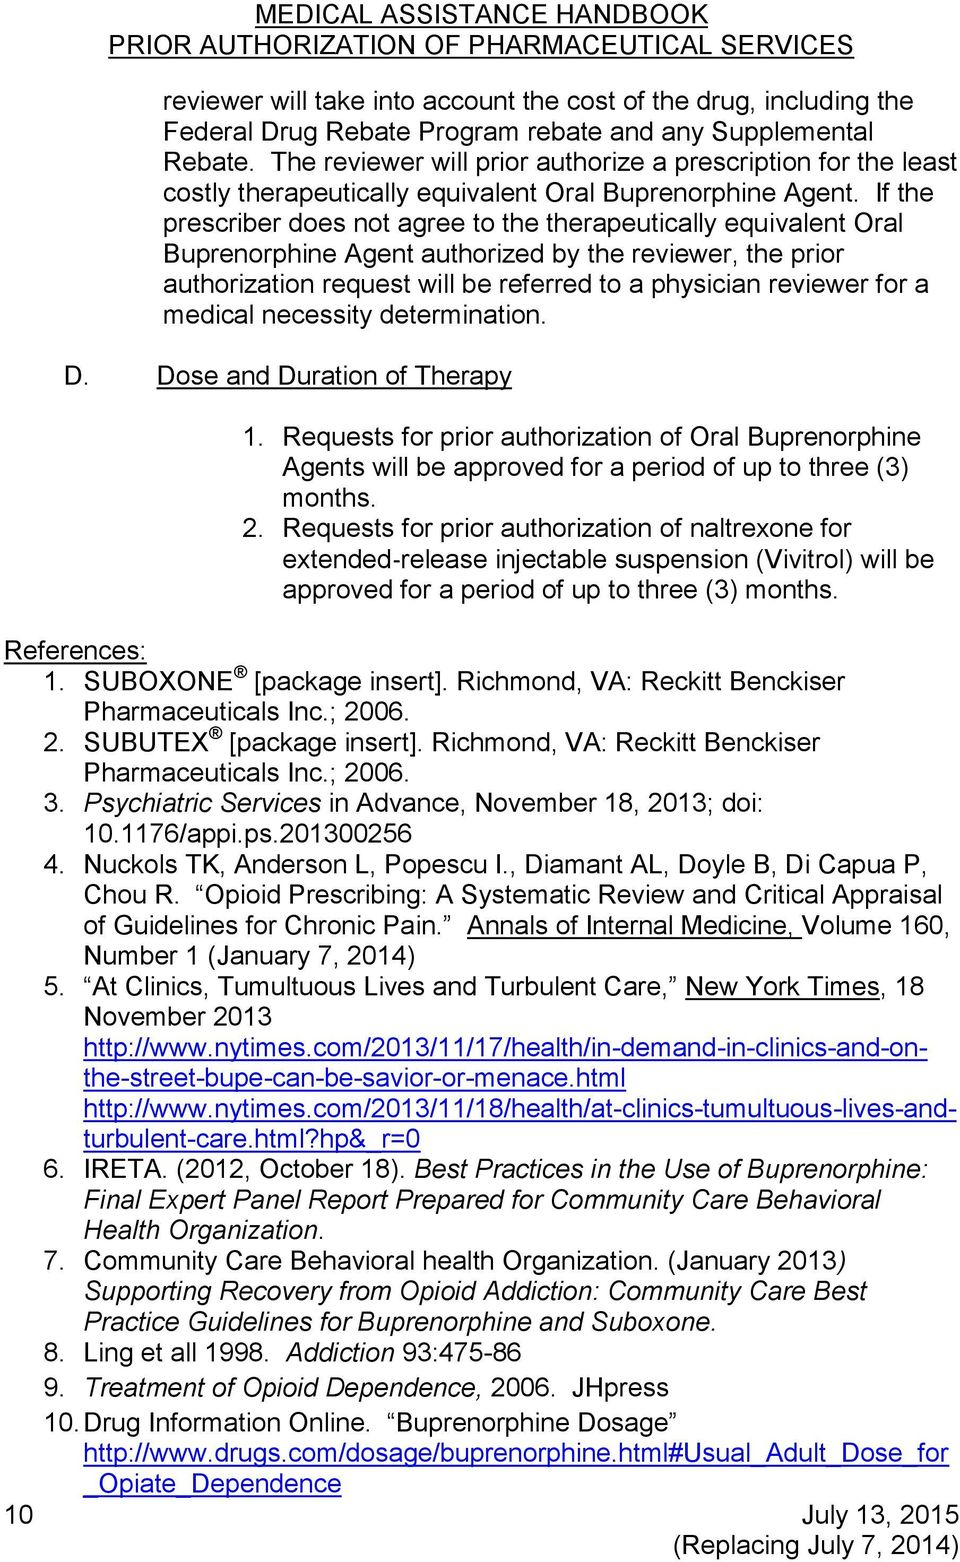 If the prescriber does not agree to the therapeutically equivalent Oral Buprenorphine Agent authorized by the reviewer, the prior authorization request will be referred to a physician reviewer for a